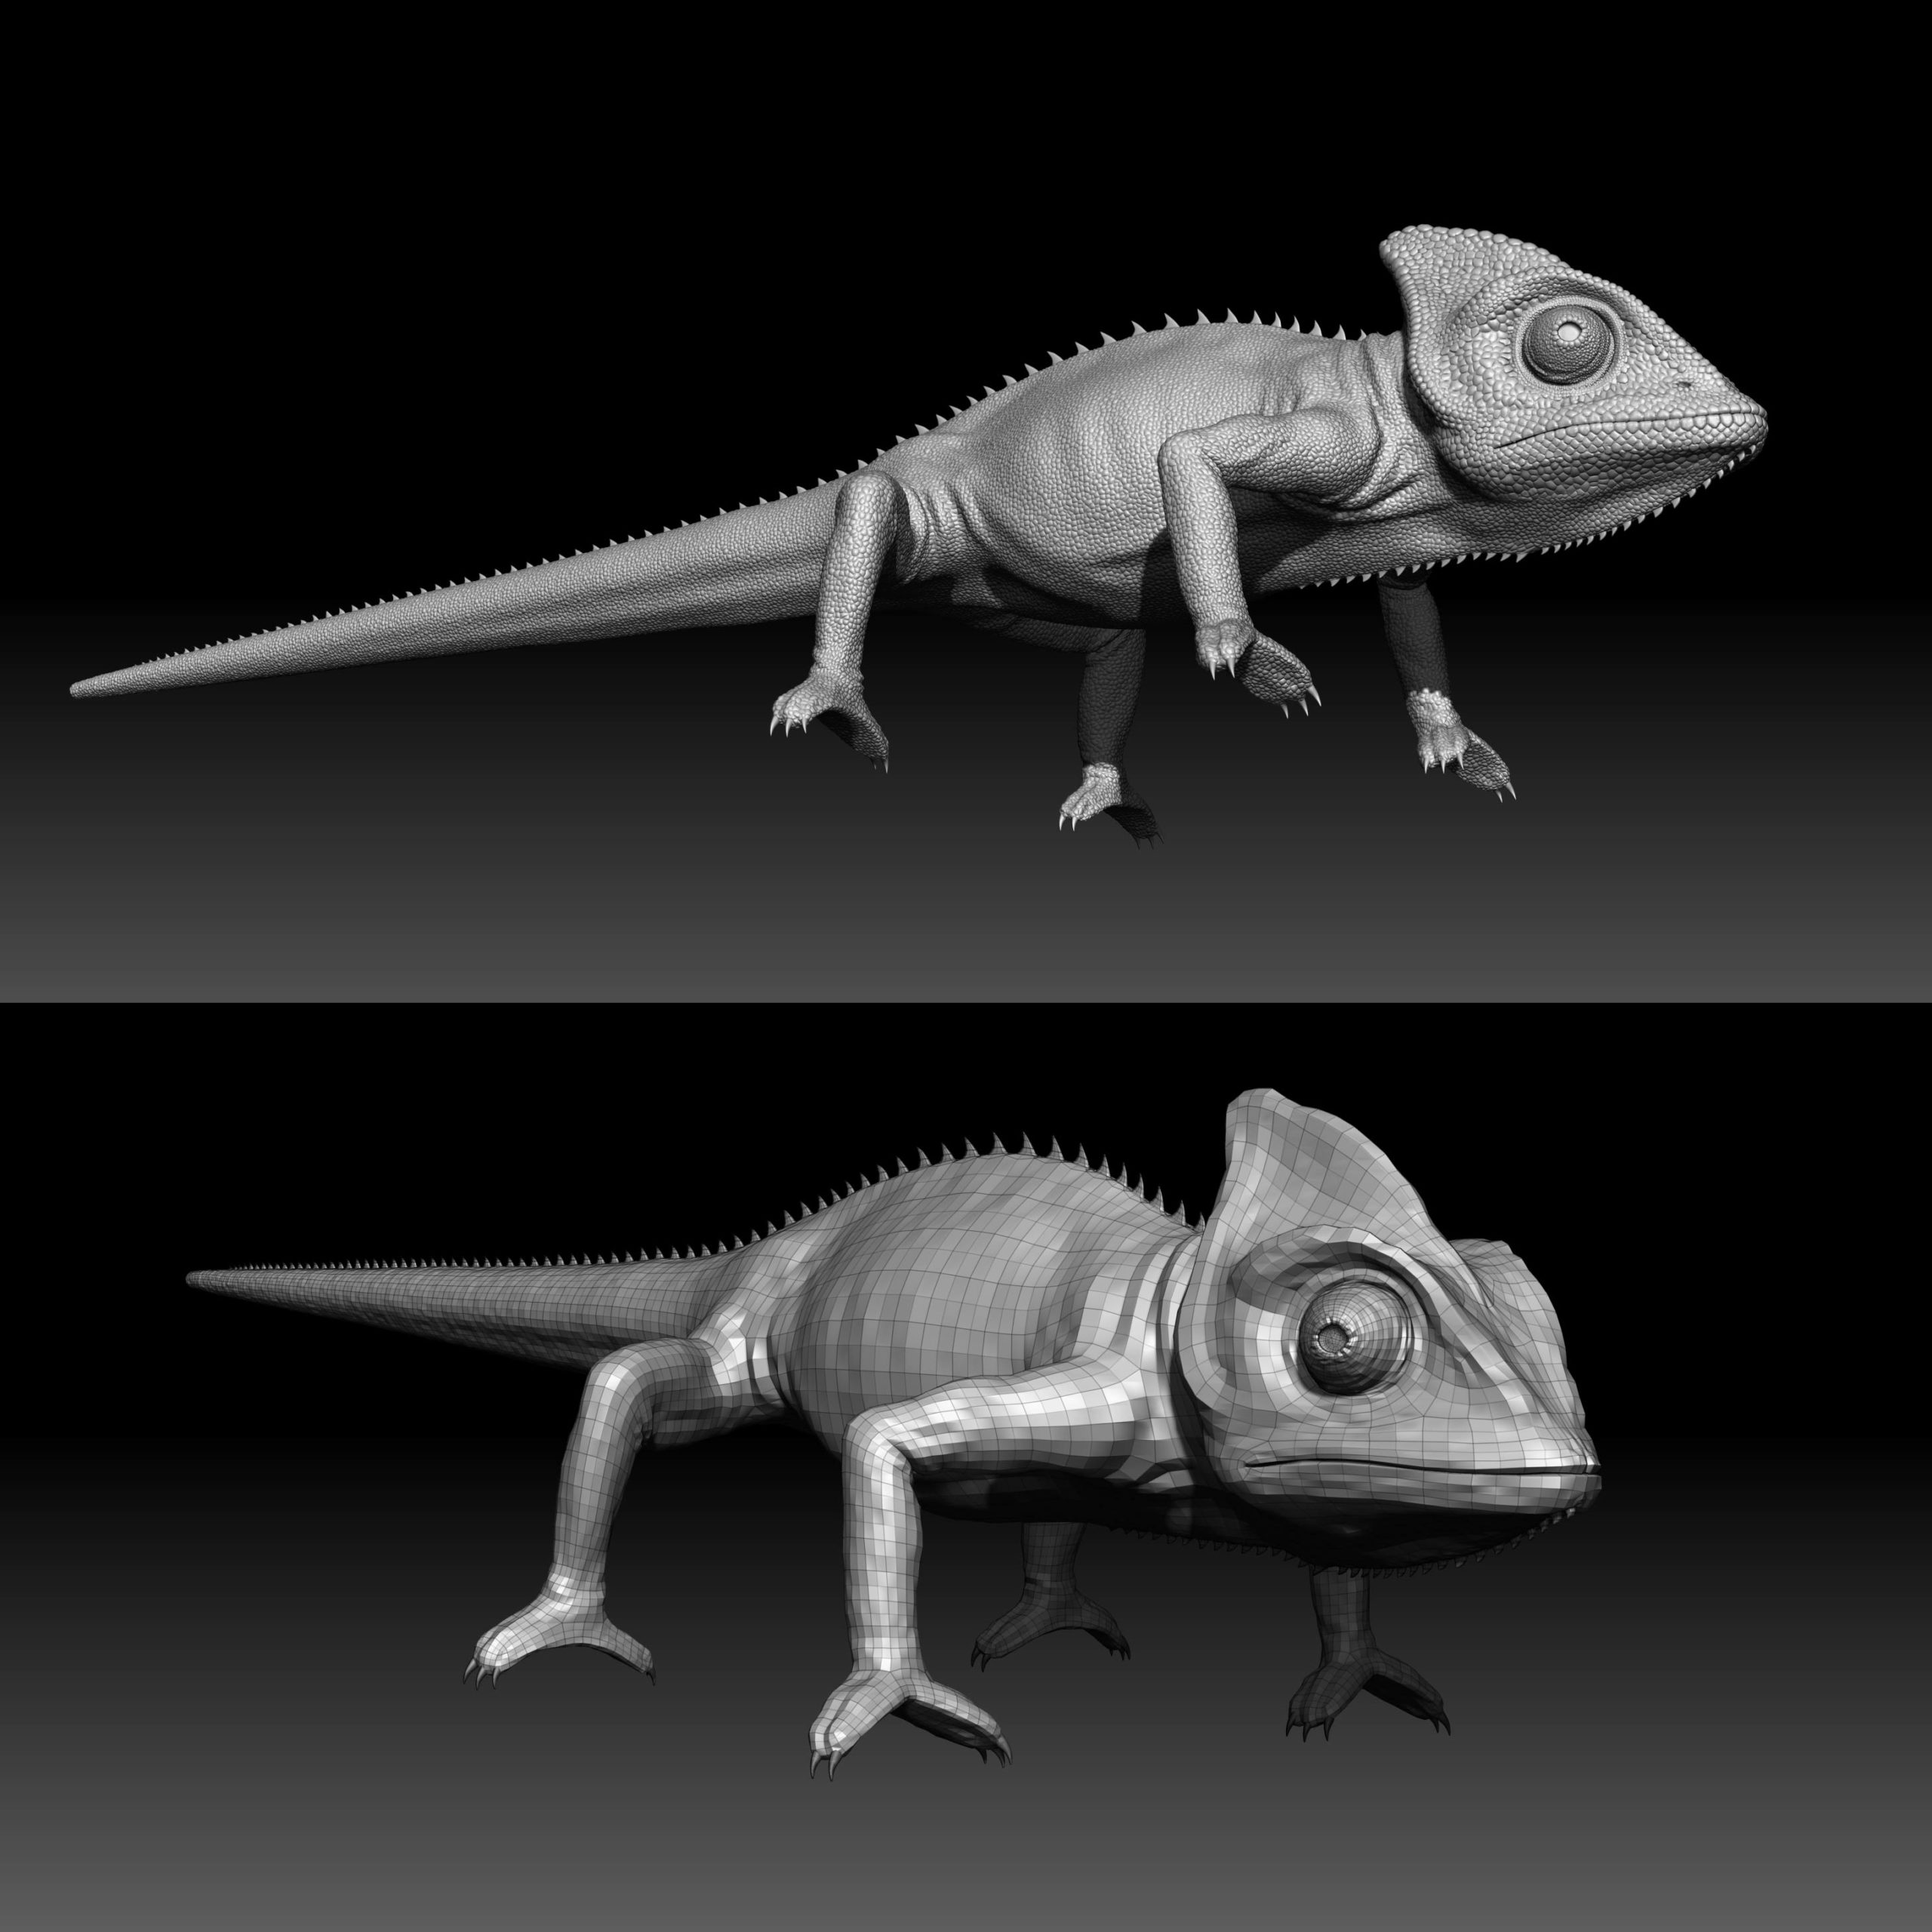 cg_chameleon_animals_zbrush-sculpting-scaled Chameleon - Animation / TRACKING and MATCHMOVING / VFX